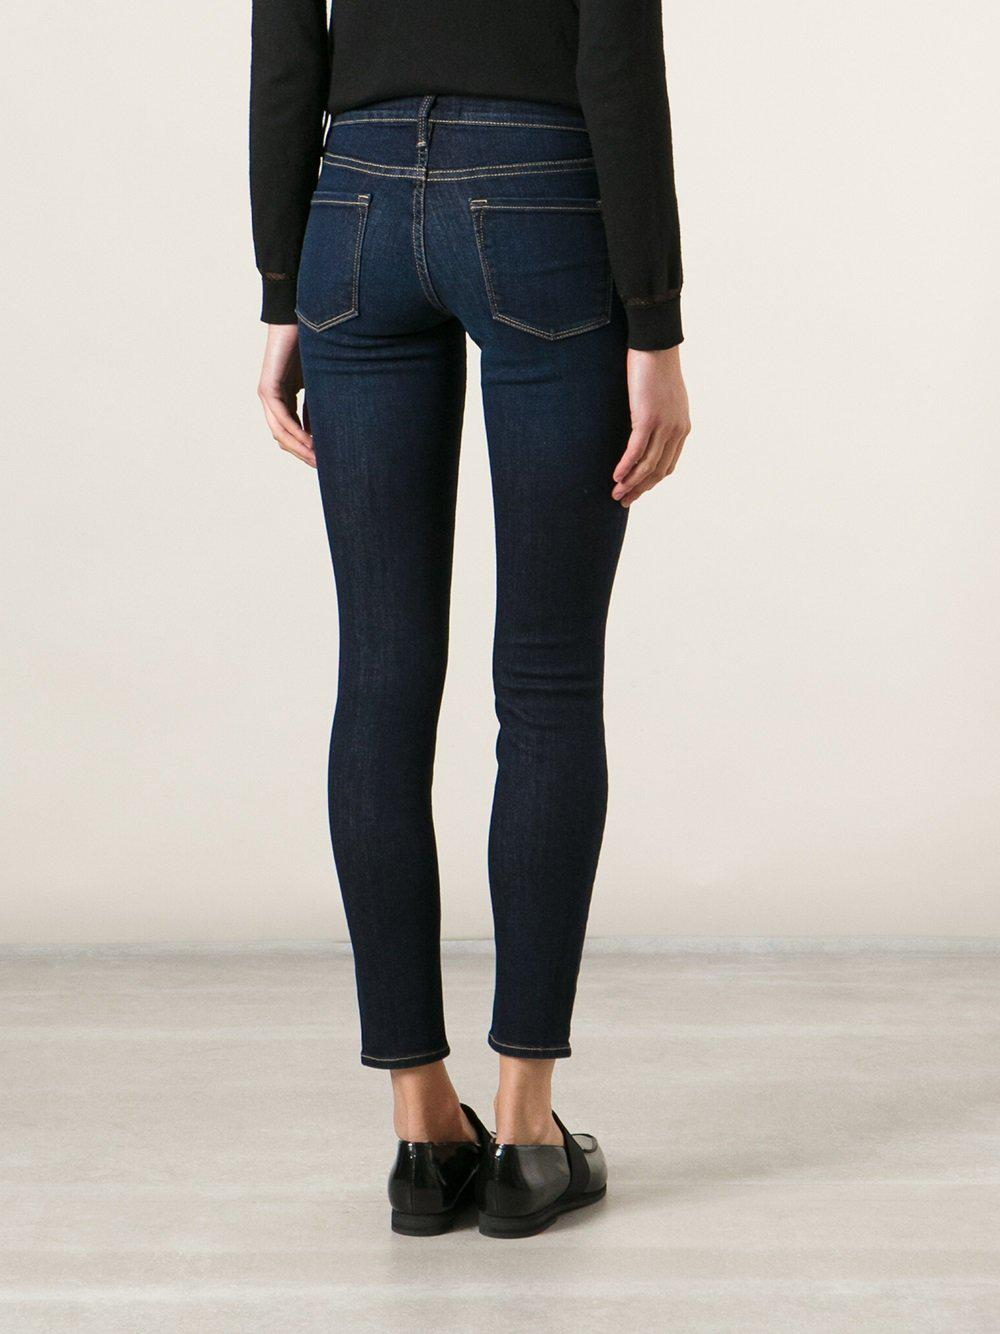 FRAME Cropped Skinny Jeans in Blue